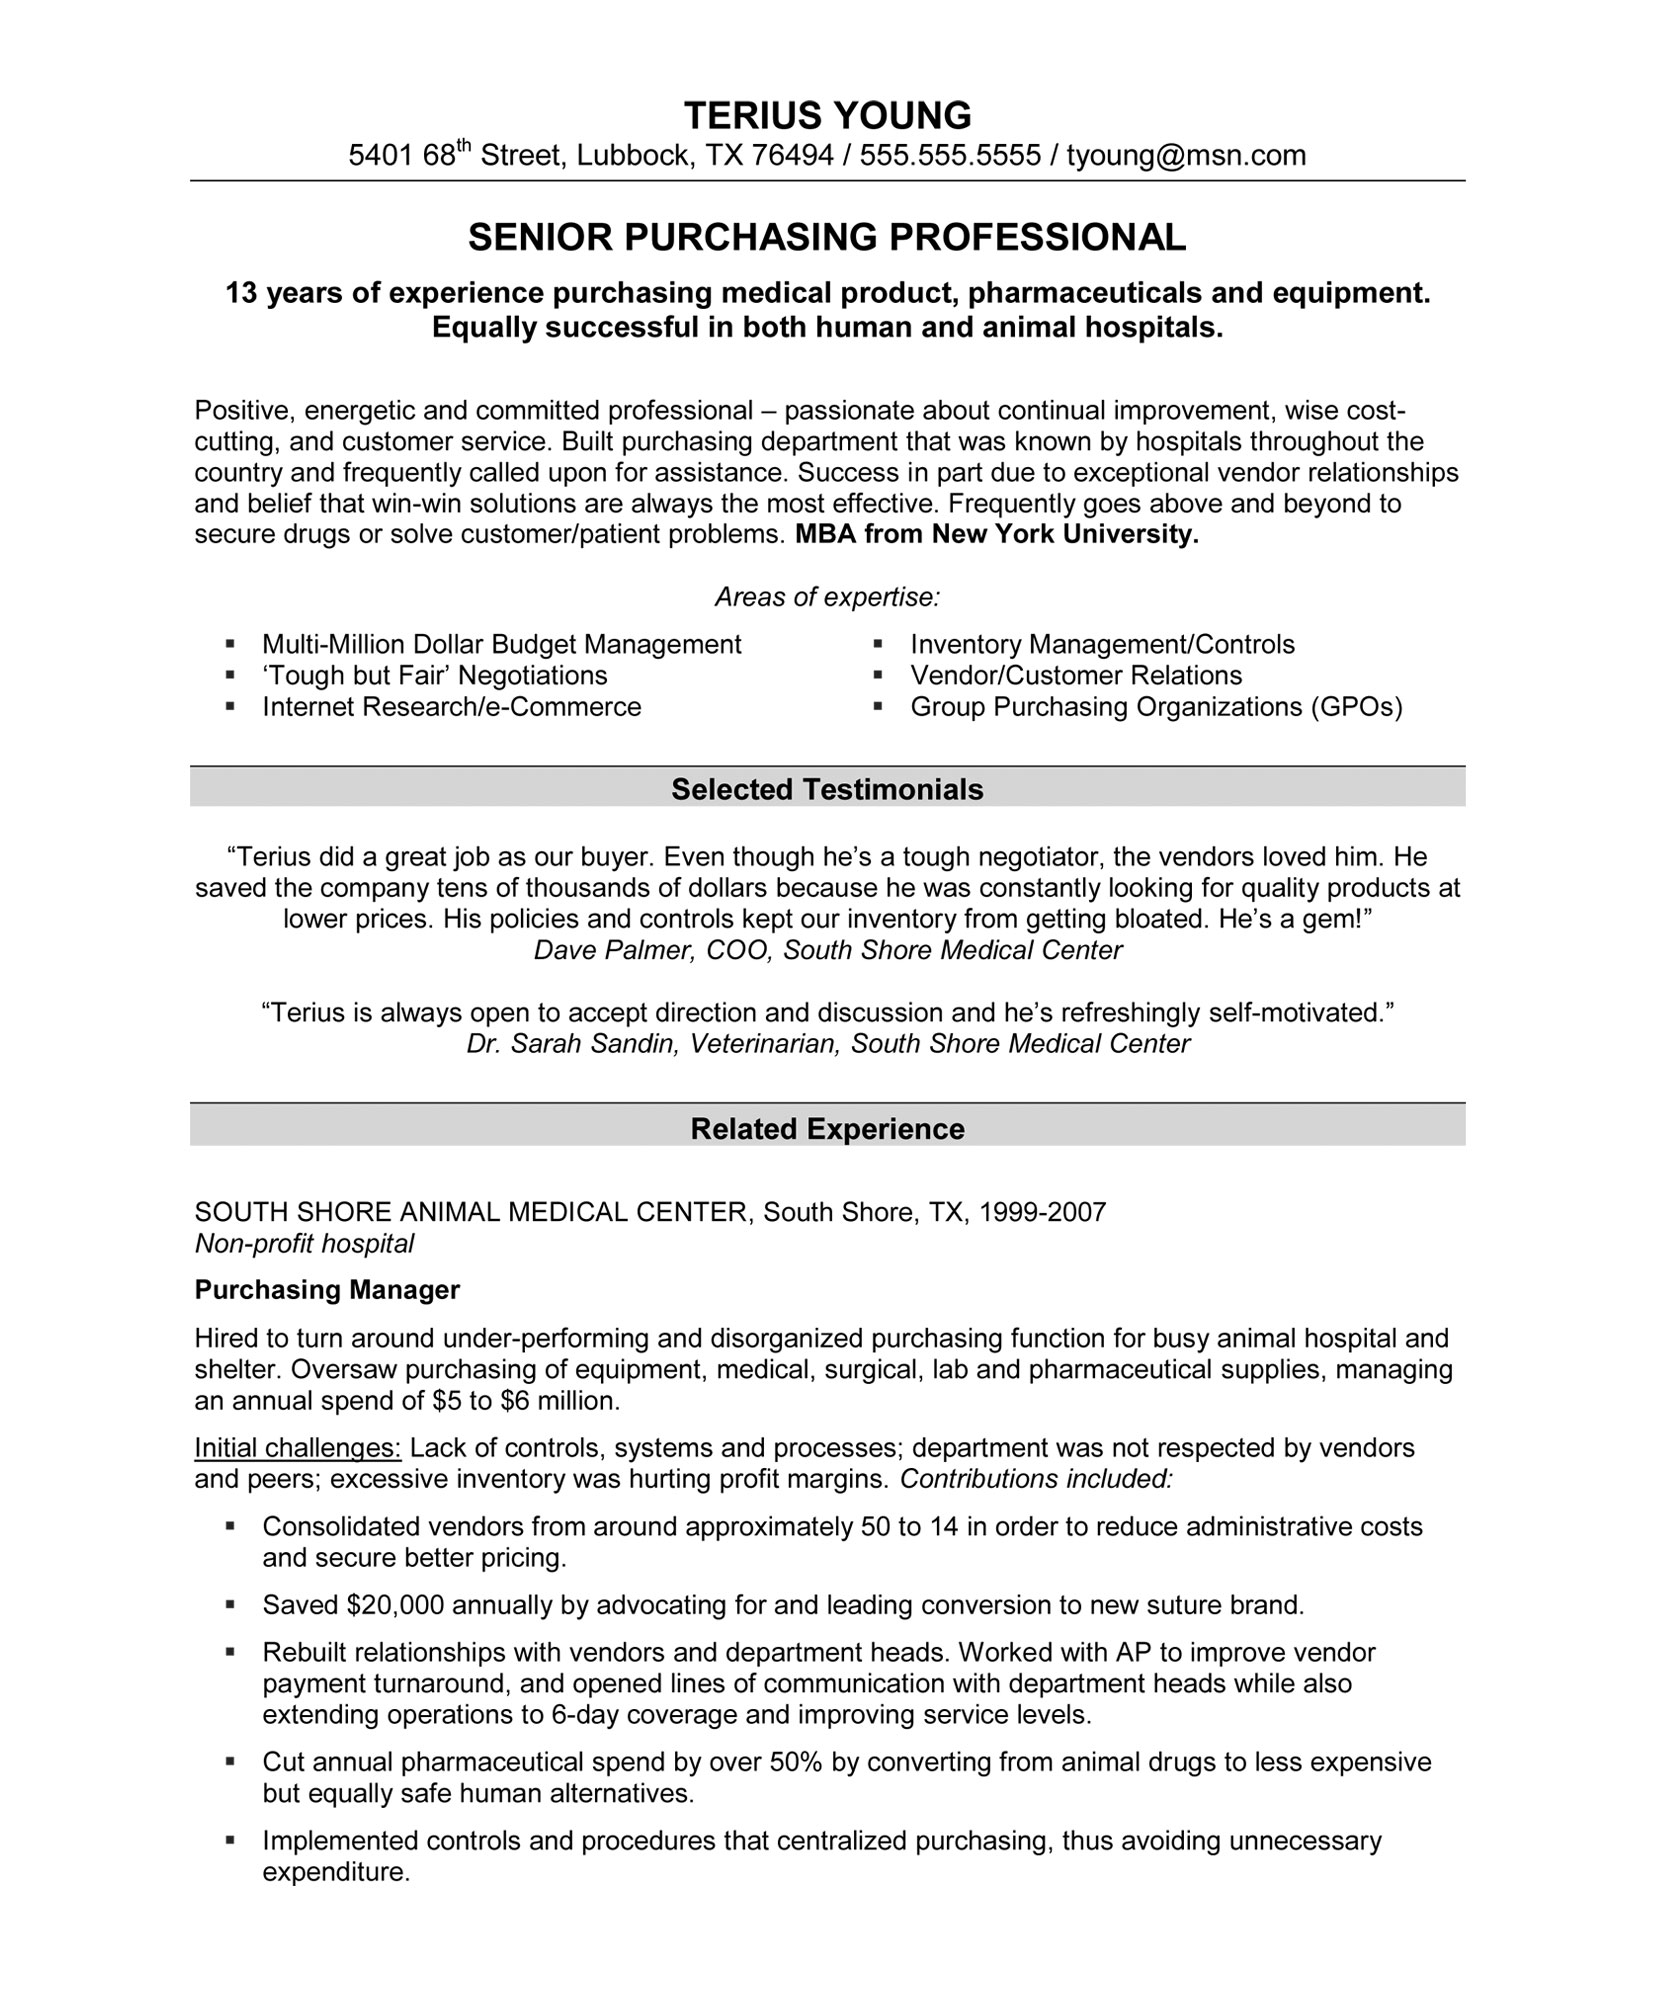 Resume revised professional